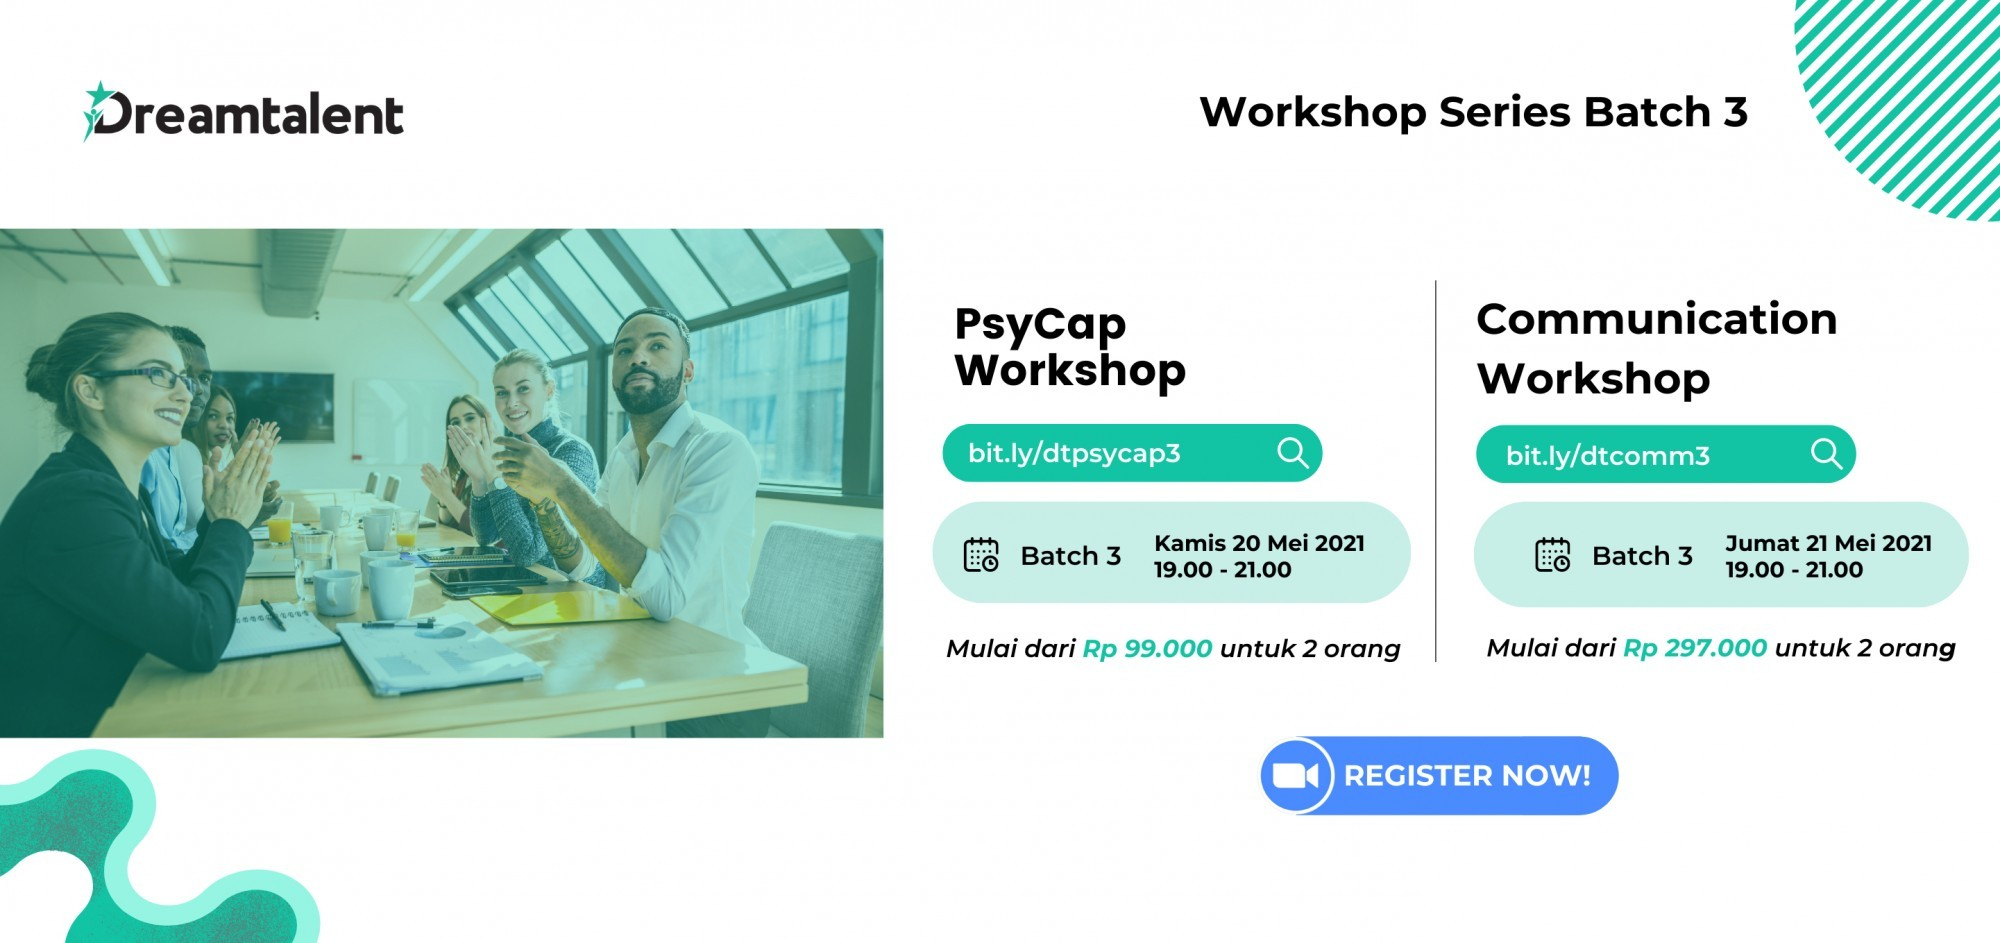 PsyCap Workshop by Dreamtalent (Batch 3)